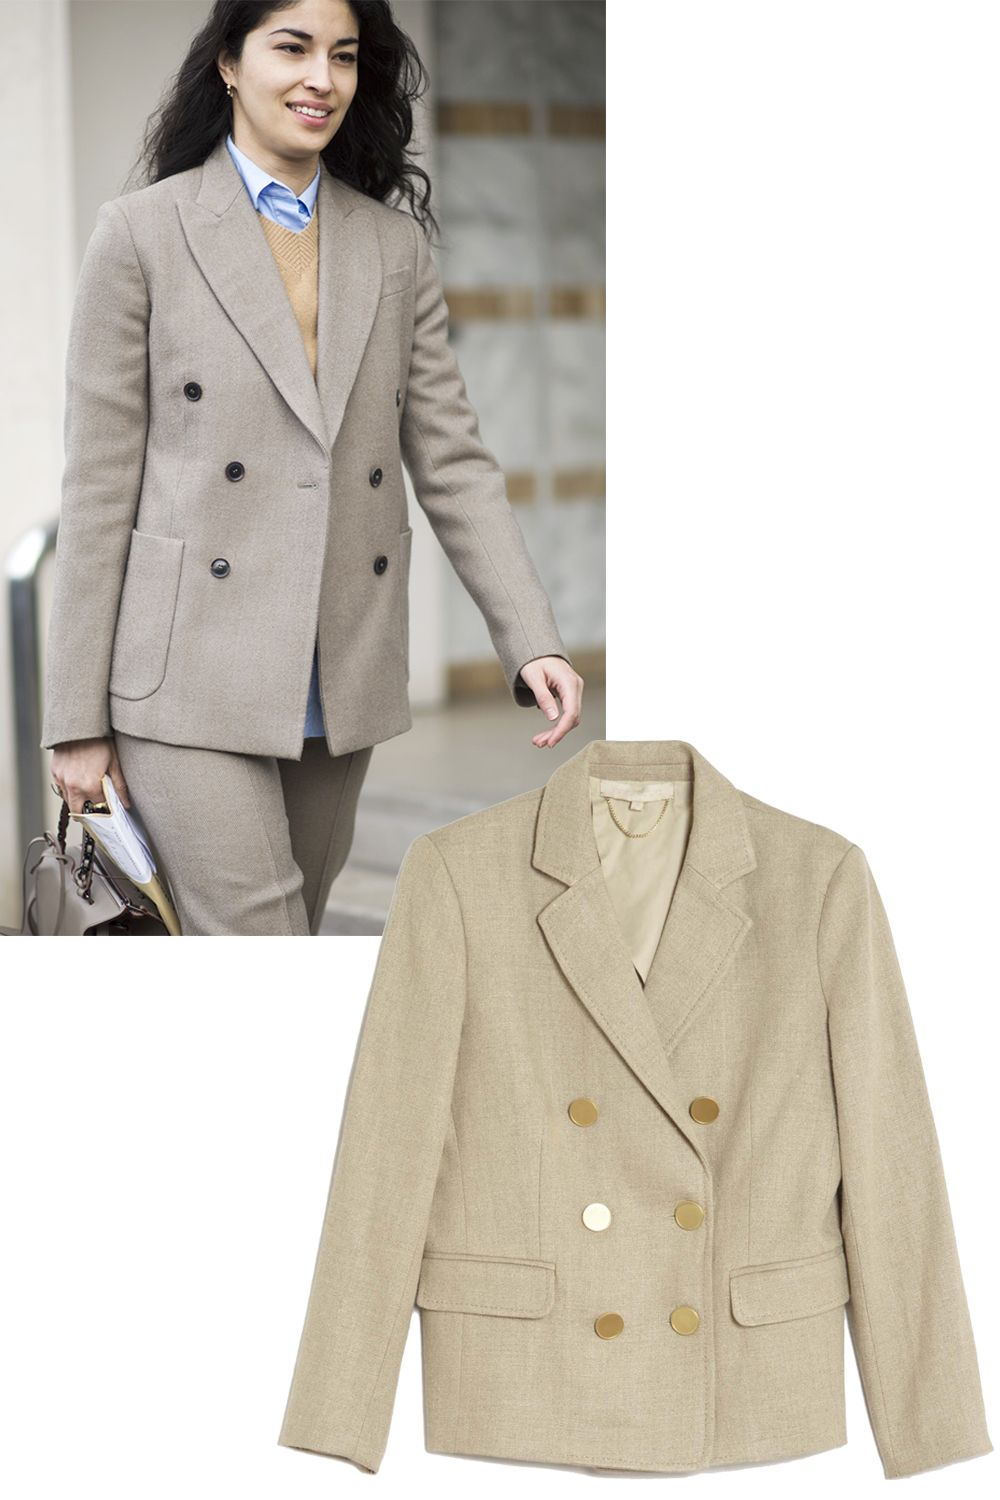 "<p>A blazer in a neutral hue is less conventional than black but equally as buttoned-up.</p><p><em><strong>Vanessa Bruno</strong> ""Epone"" jacket, $920, <strong><a href=""https://shop.harpersbazaar.com/designers/v/vanessa-bruno/epone-linen-jacket-8702.html"" target=""_blank"">shopBAZAAR.com</a></strong>.</em><span class=""redactor-invisible-space""><em></em><br></span></p>"